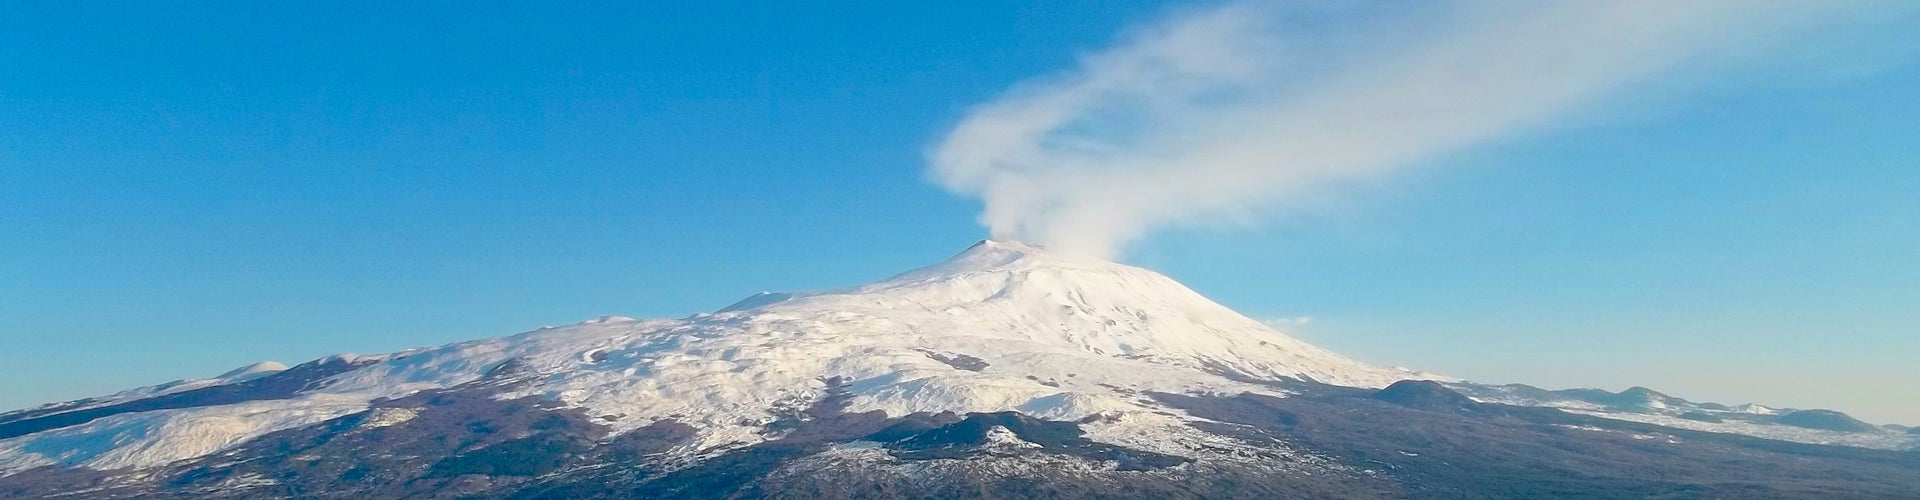 Mount Etna on the Island of Sicily